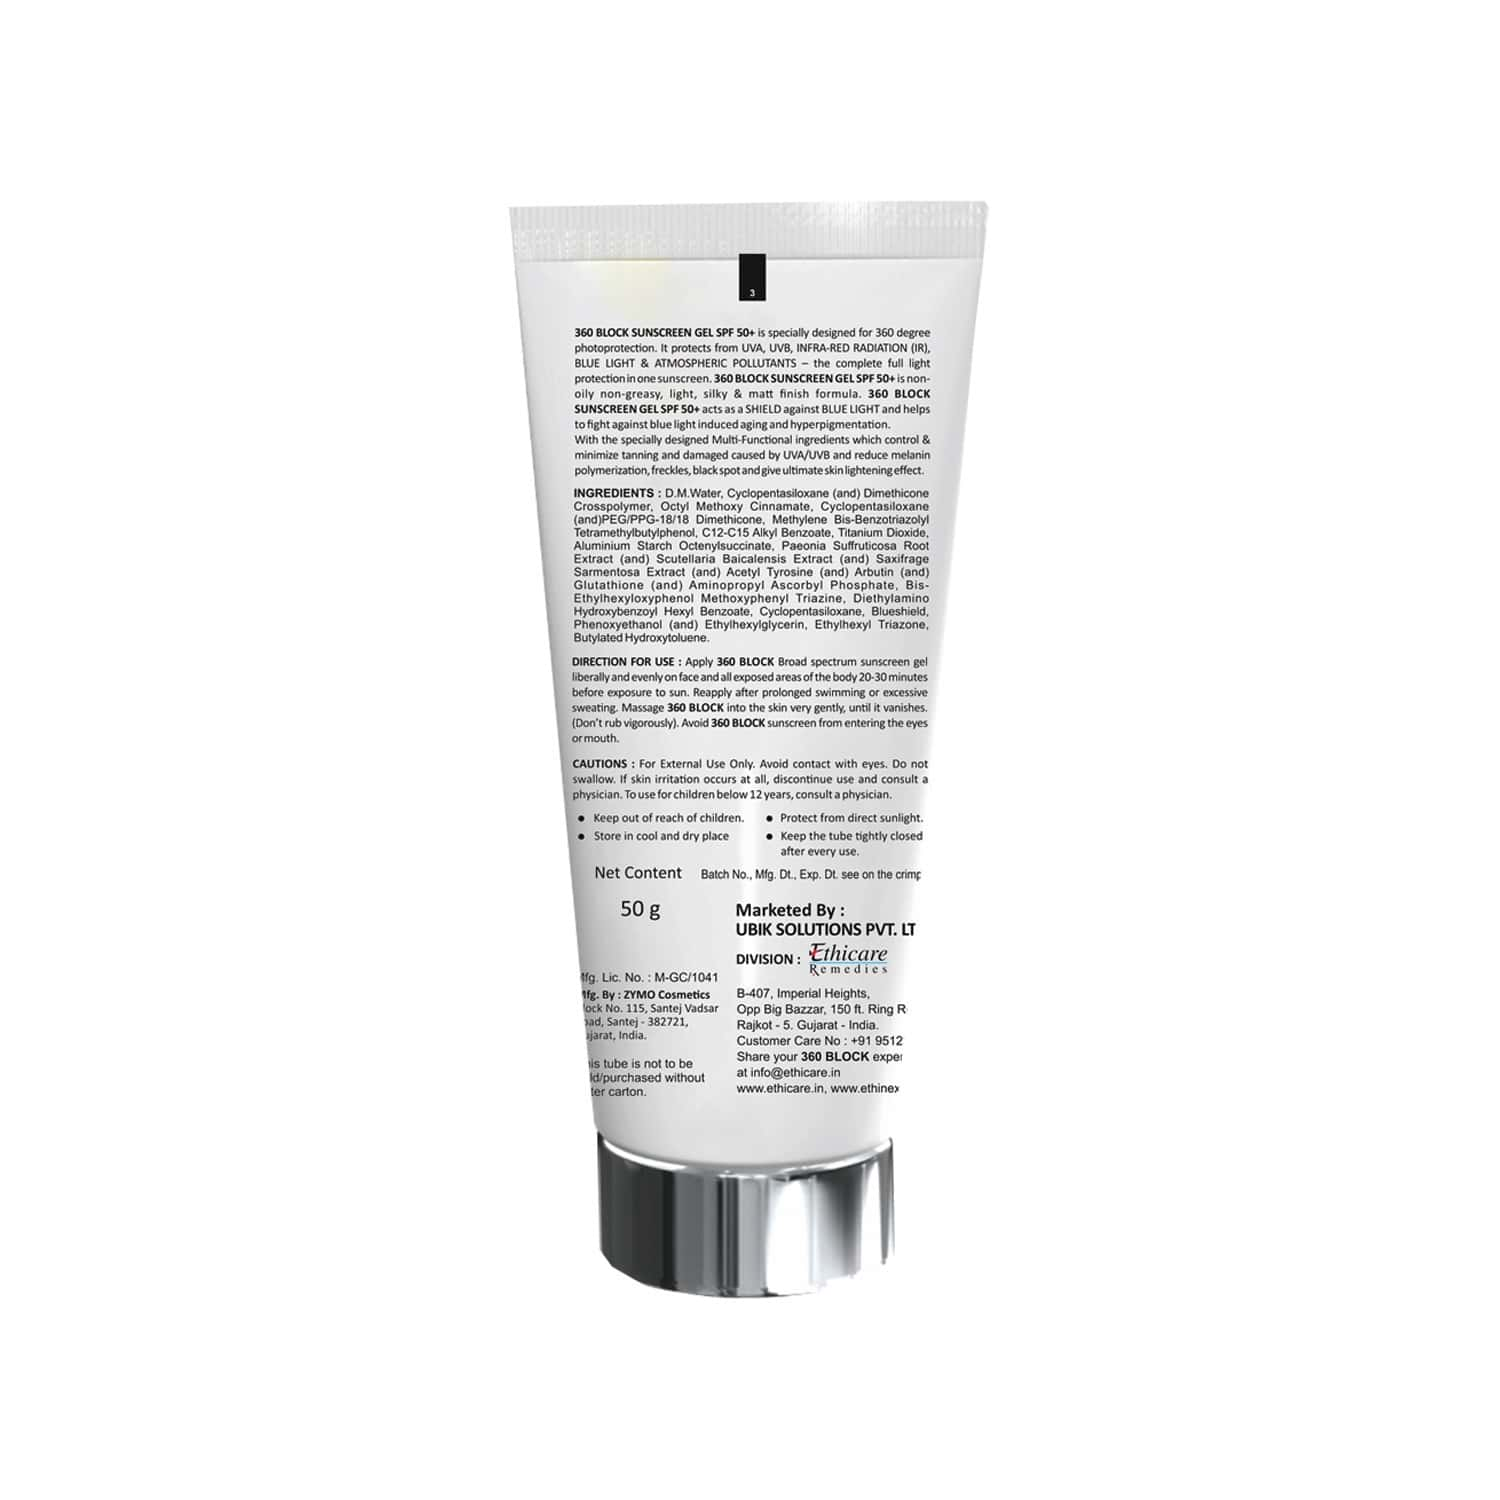 360 Block Sunscreen Gel Spf 50+ - Protects From Uva, Uvb, Infra-red Radiation